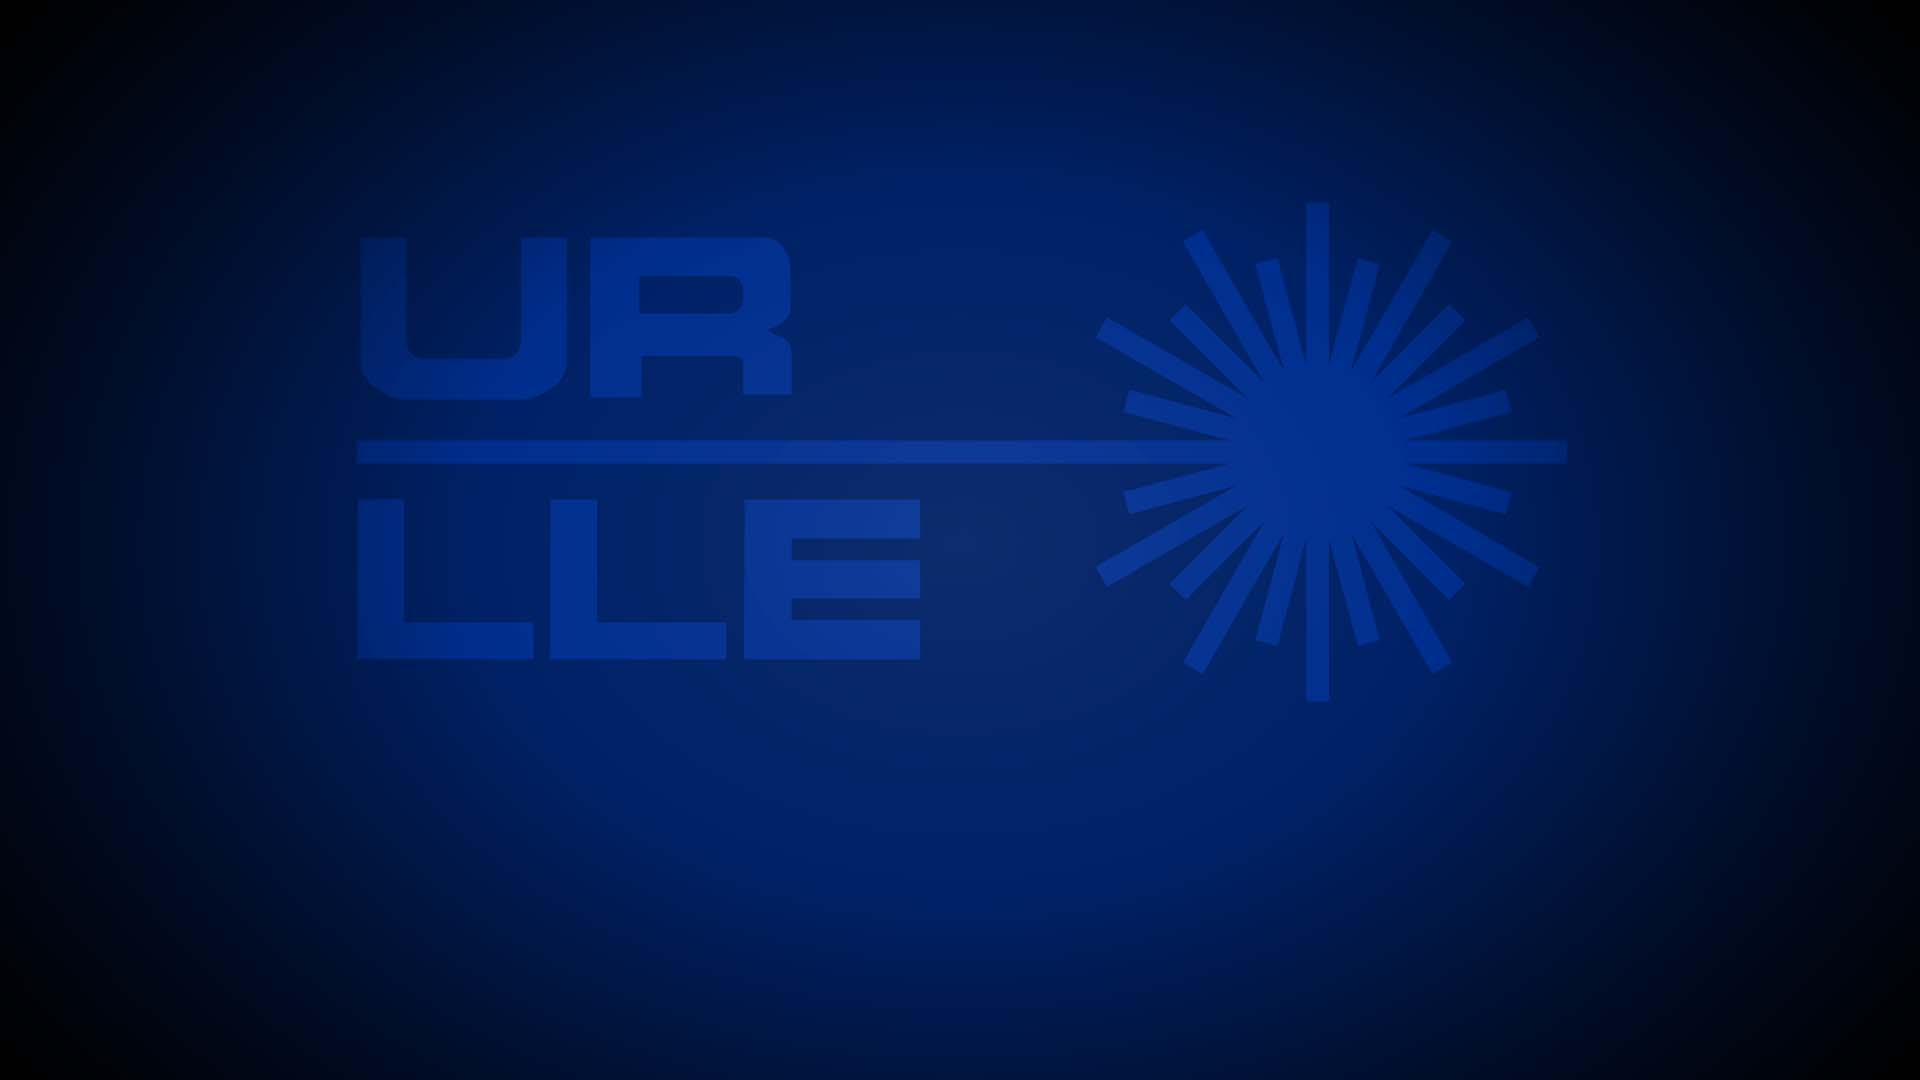 LLE Zoom background with URLLE logo